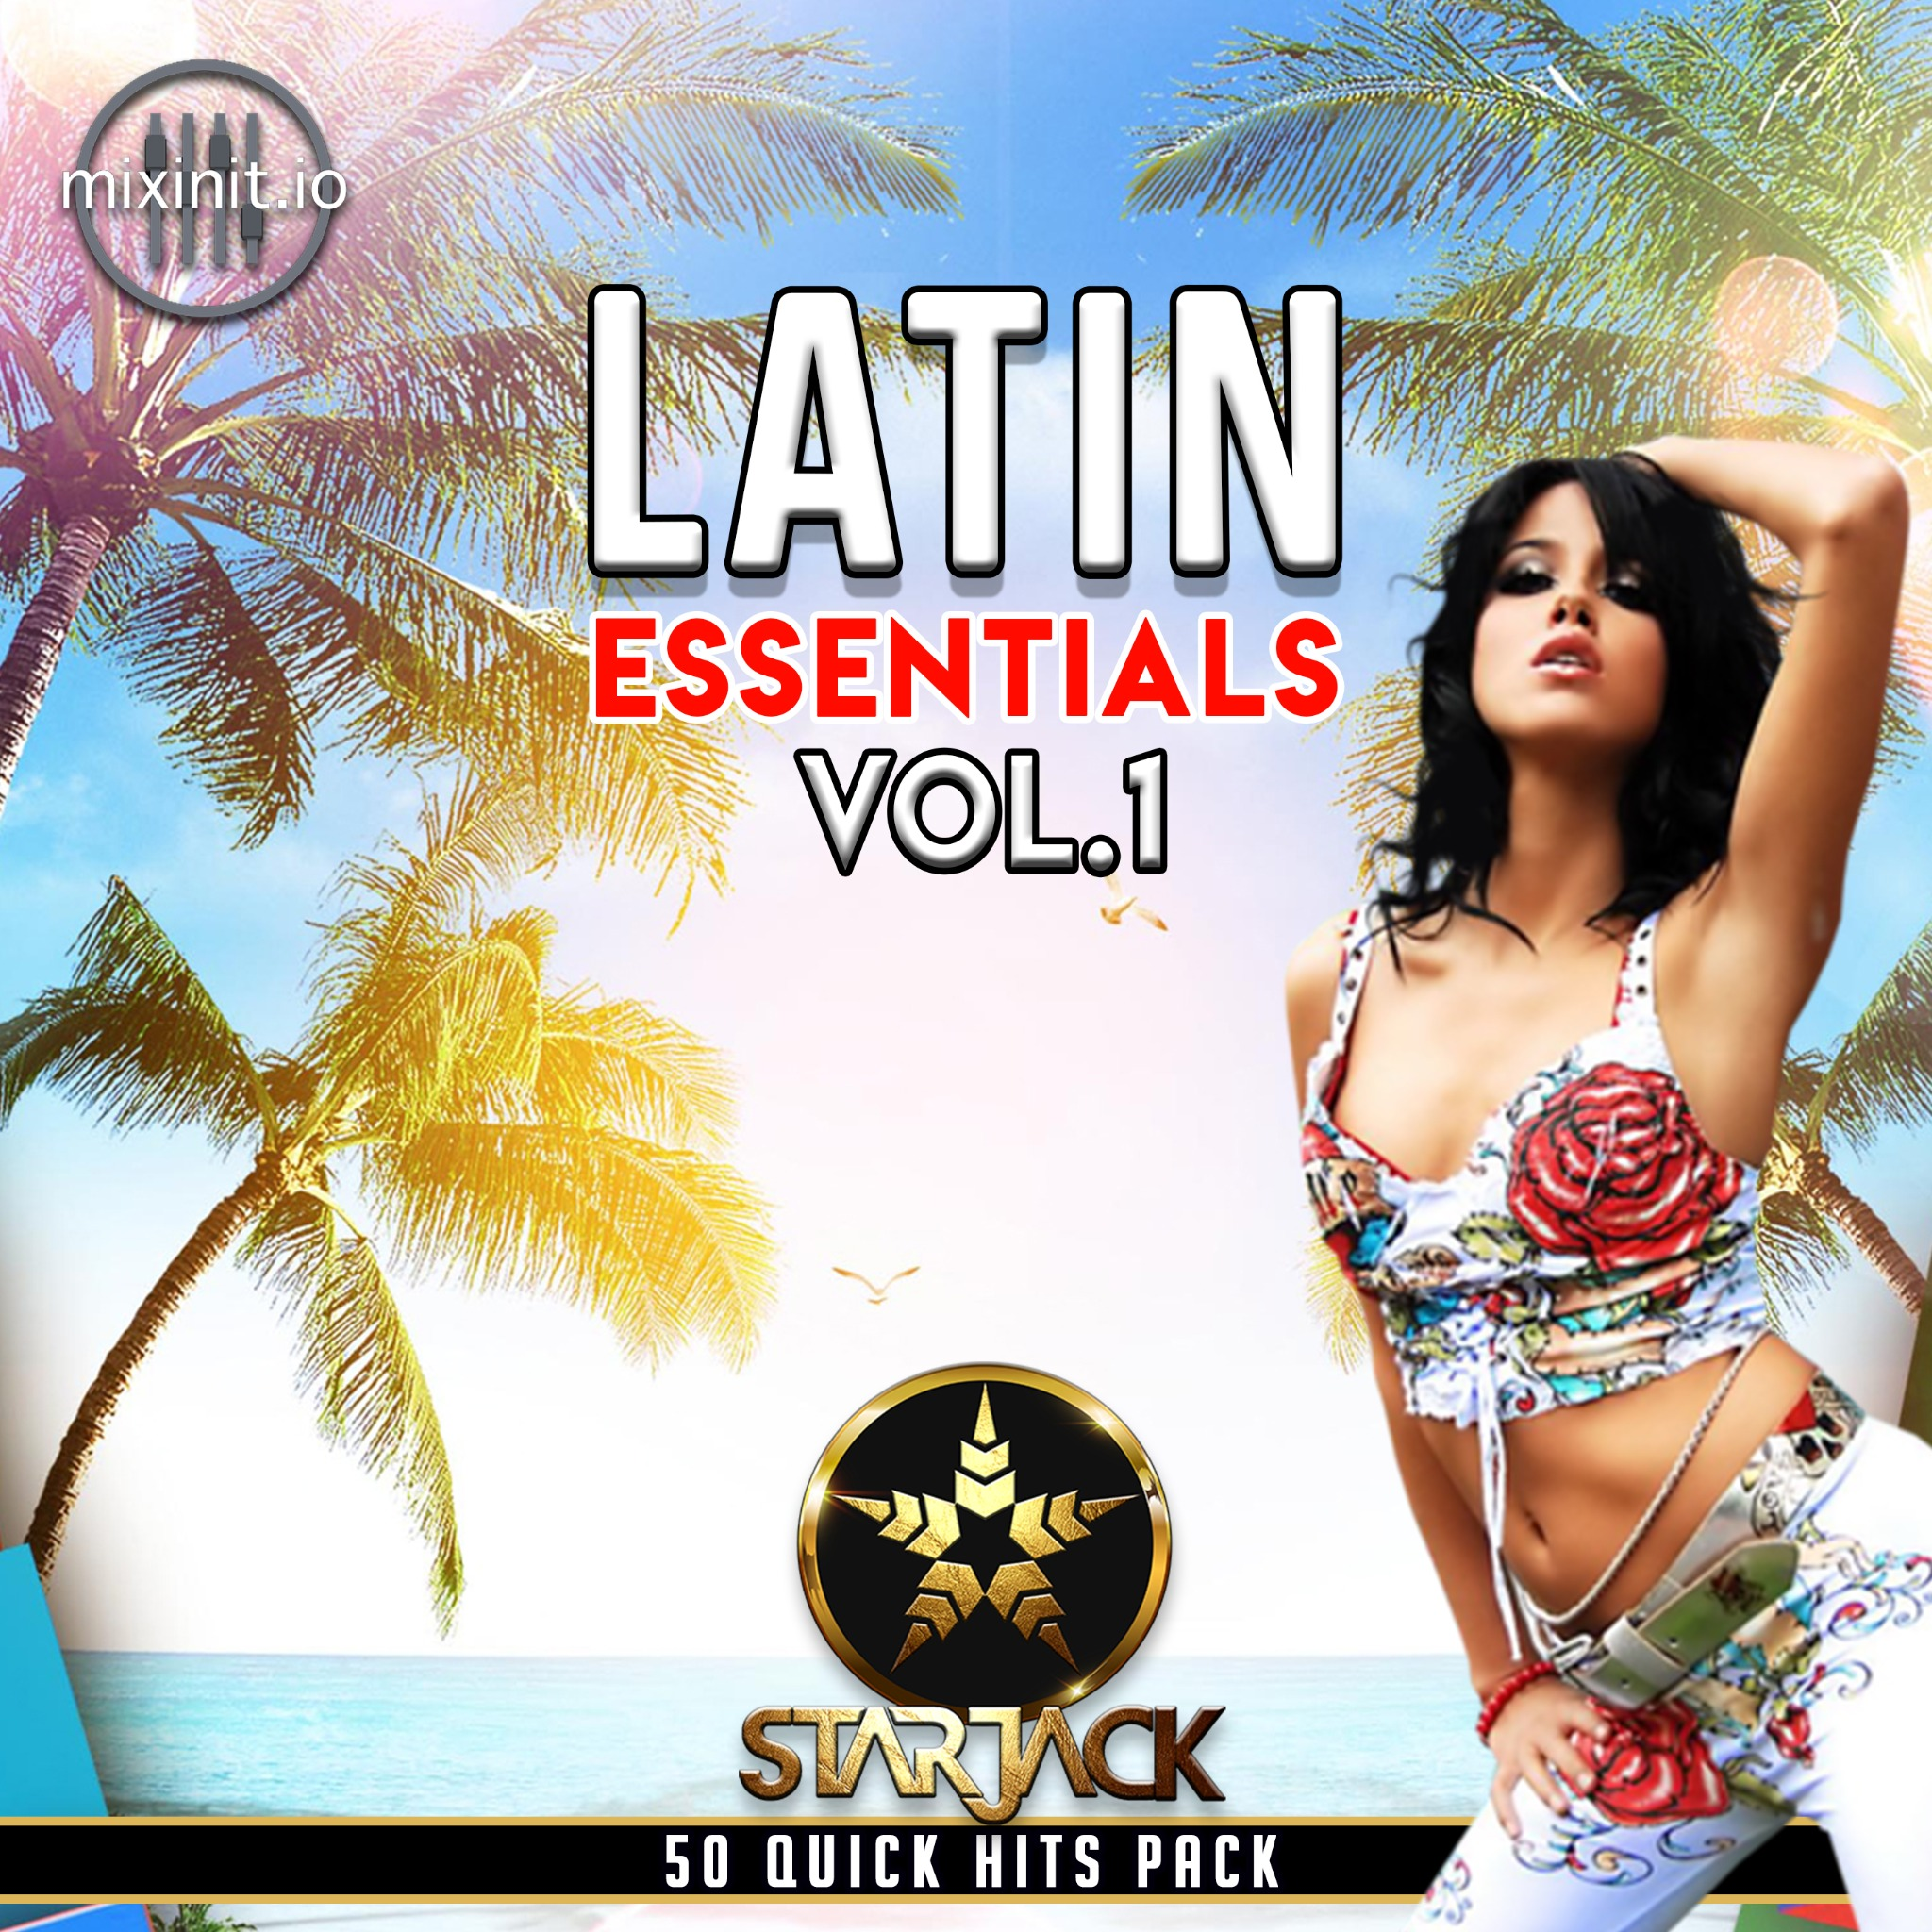 Starjack - Latin Essentials Vol. 1